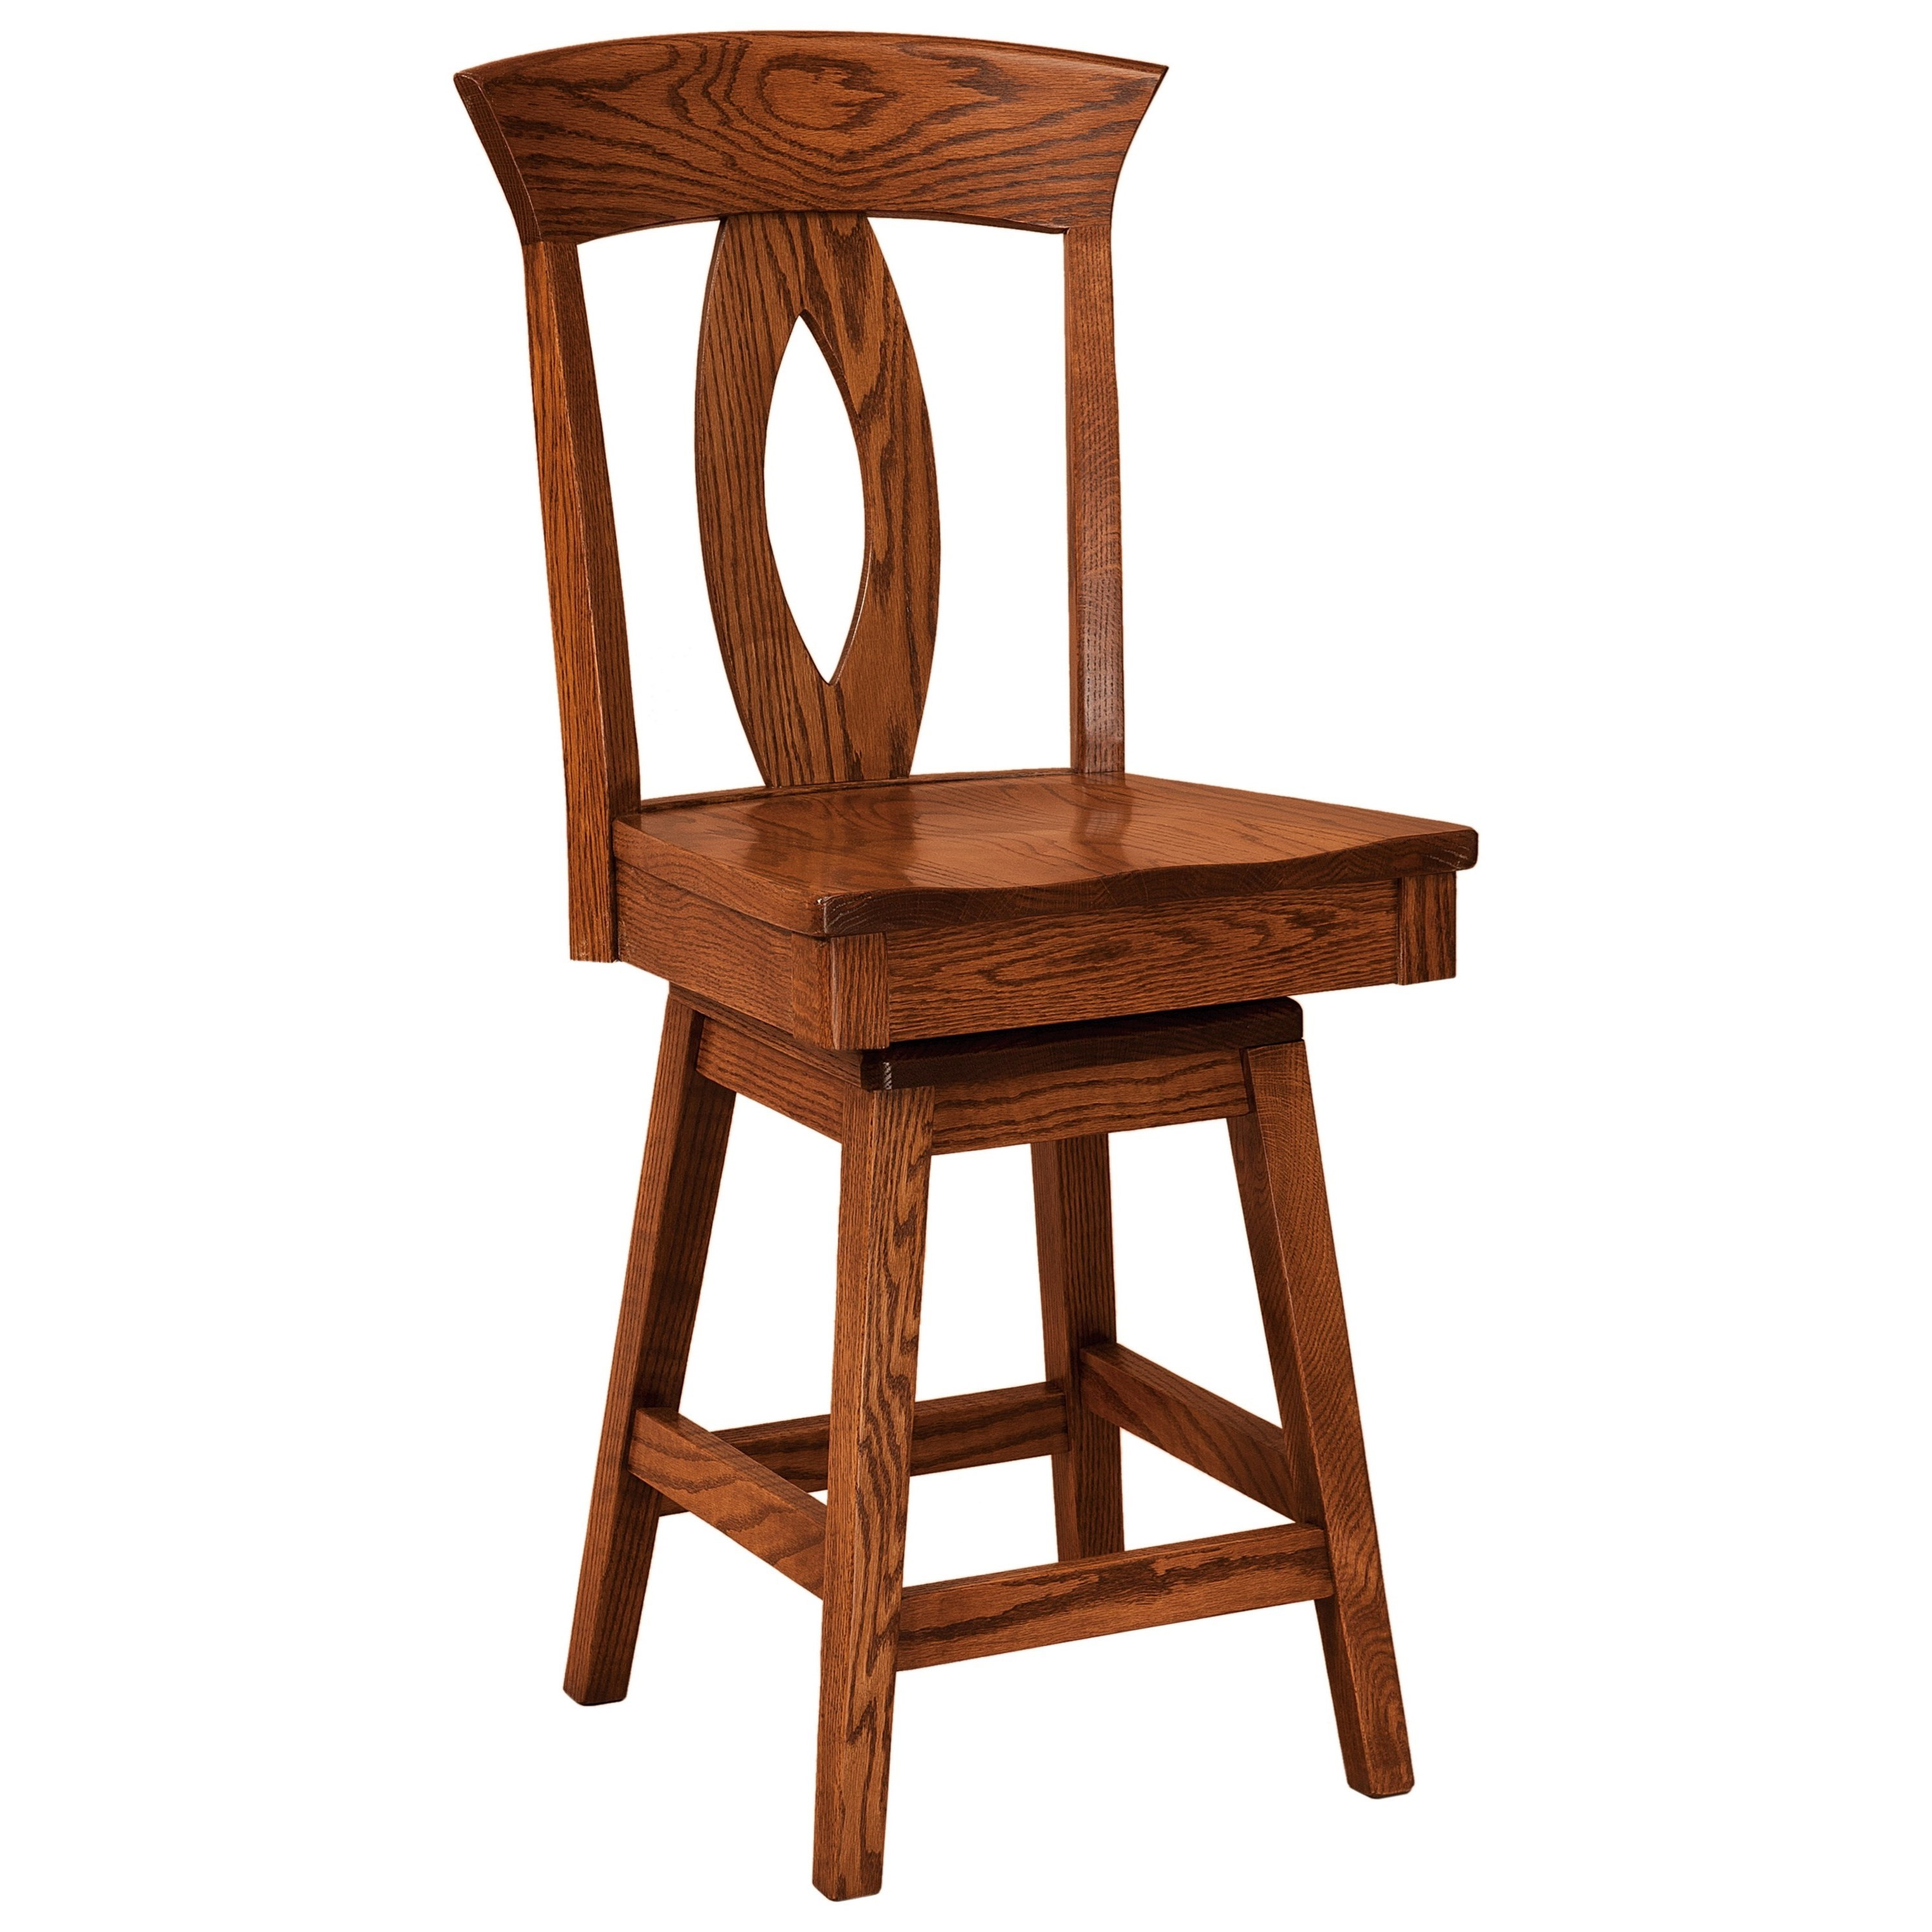 Brookfield Swivel Bar Stool - Wood Seat by F&N Woodworking at Mueller Furniture